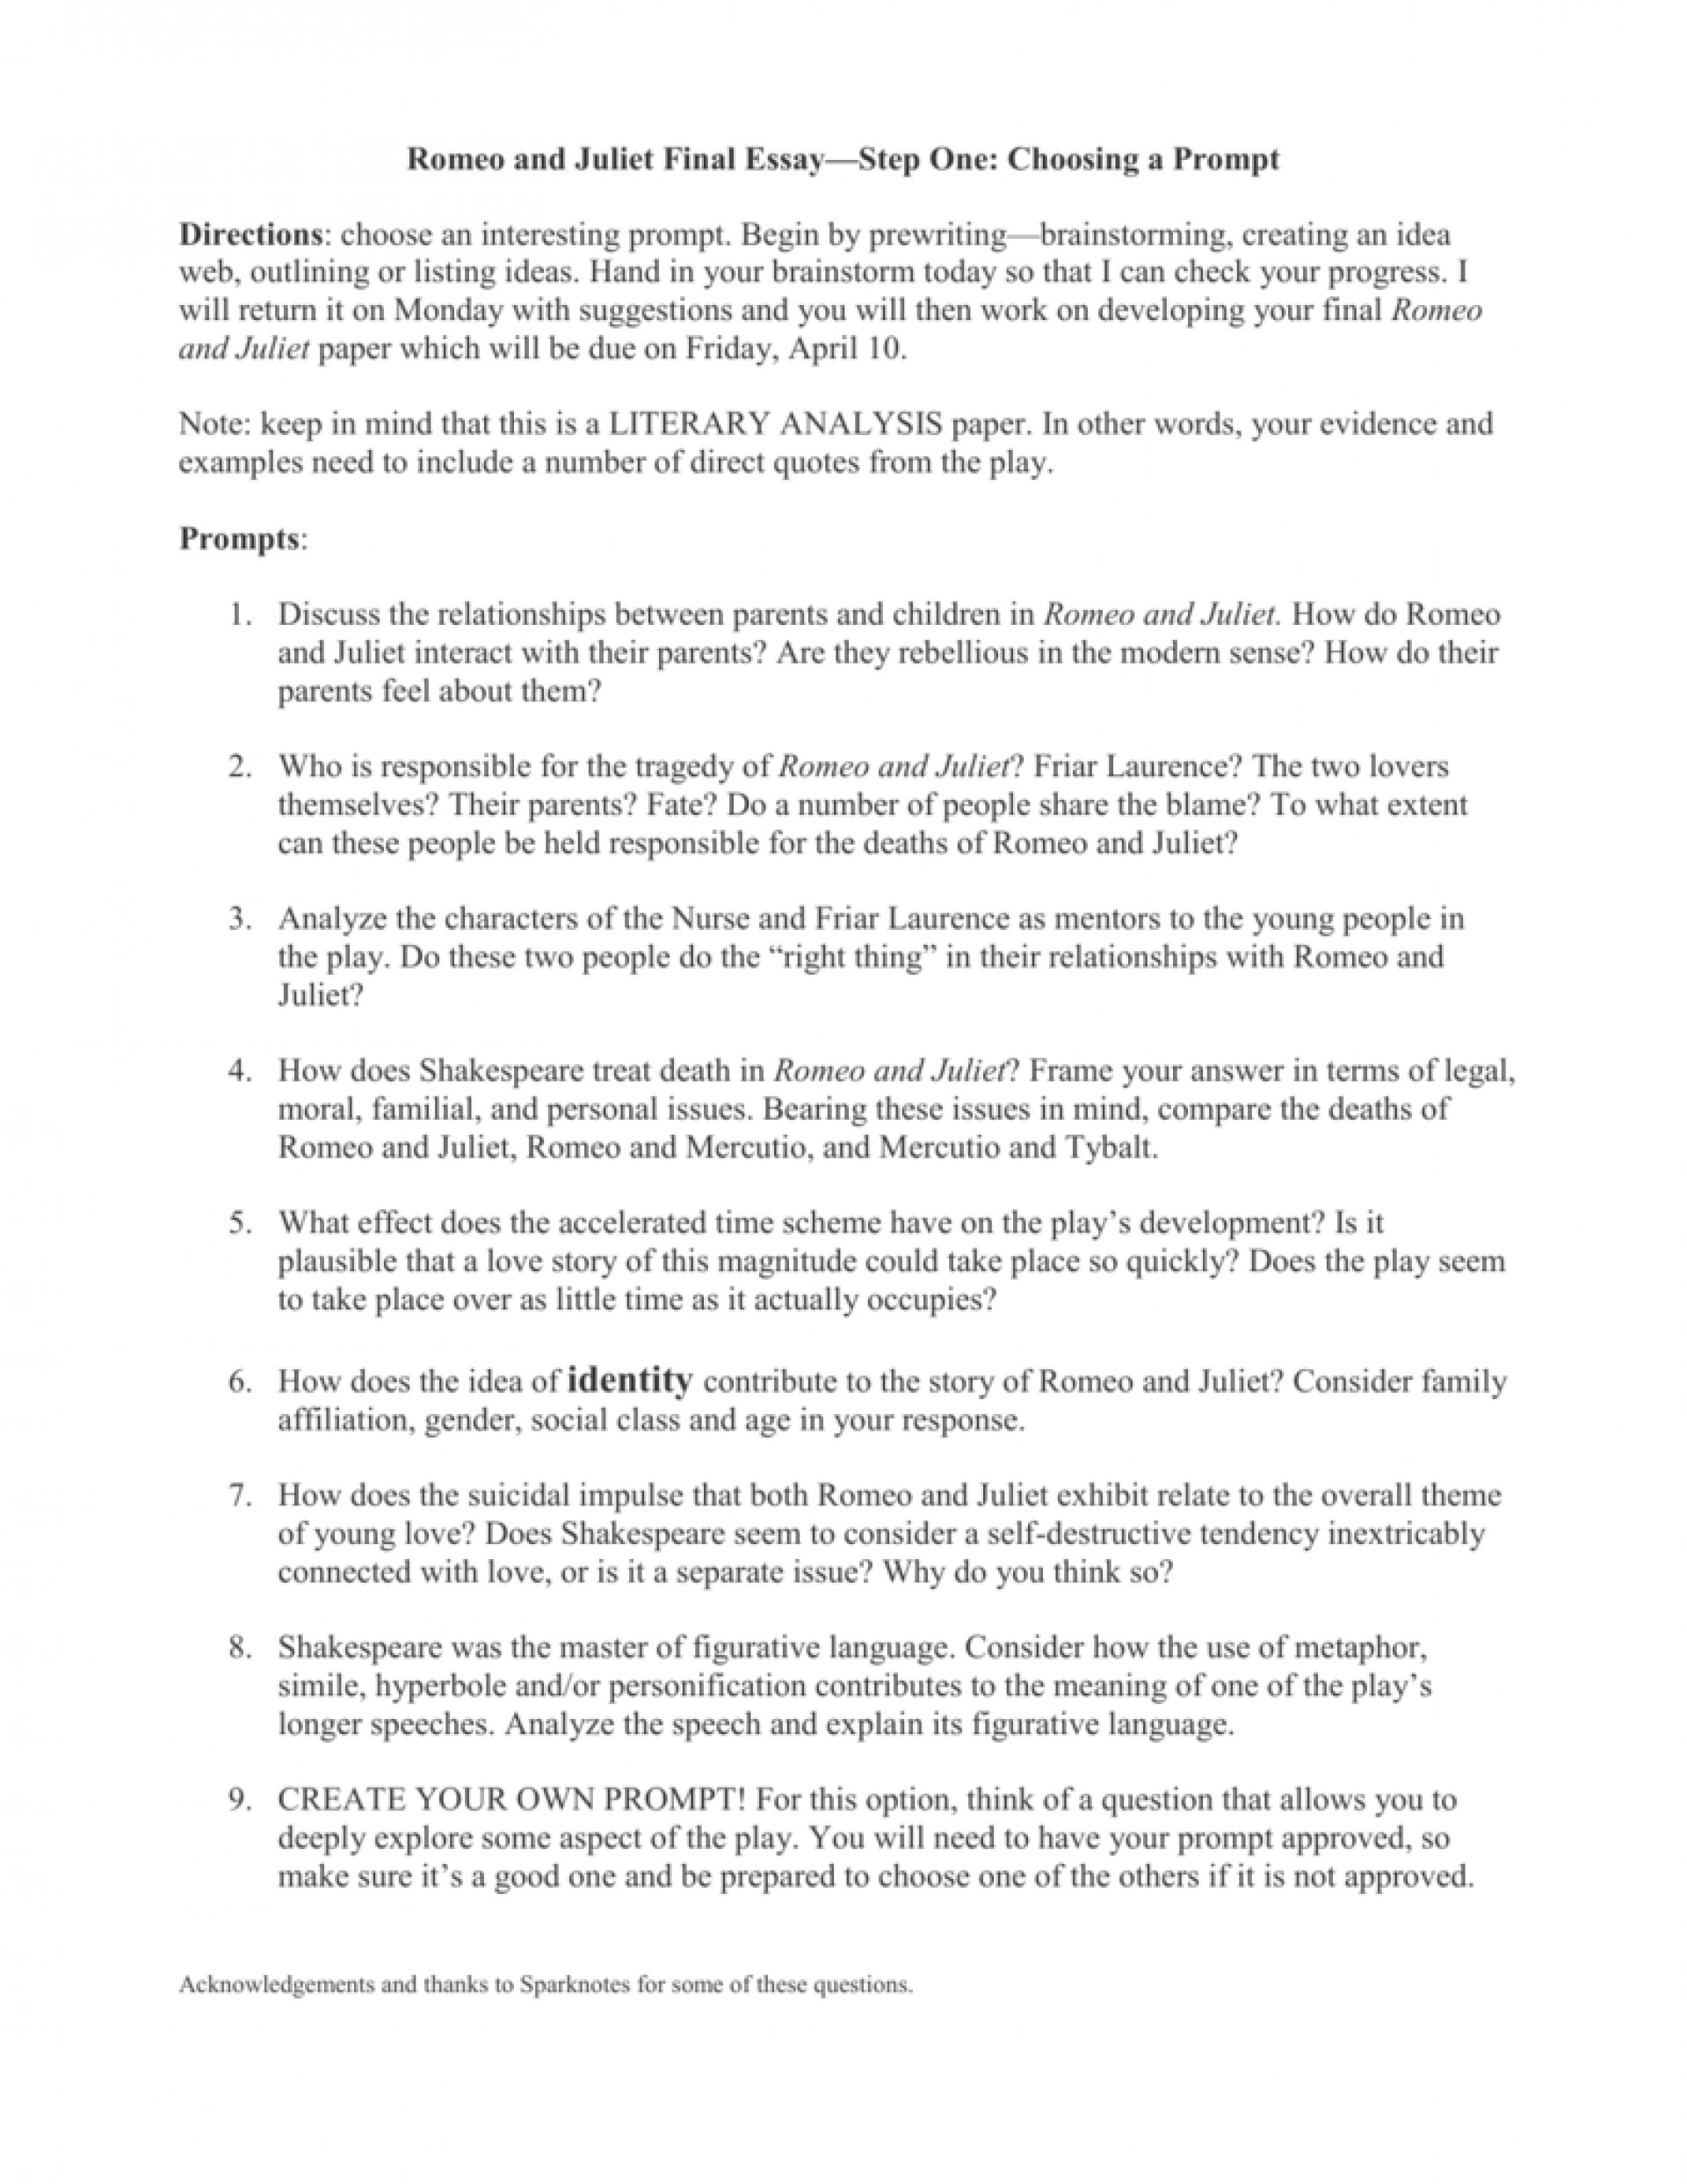 006 Essay Example 007794597 2 Romeo And Juliet Fantastic Prompts Prompt Who Is To Blame Questions Writing 1920